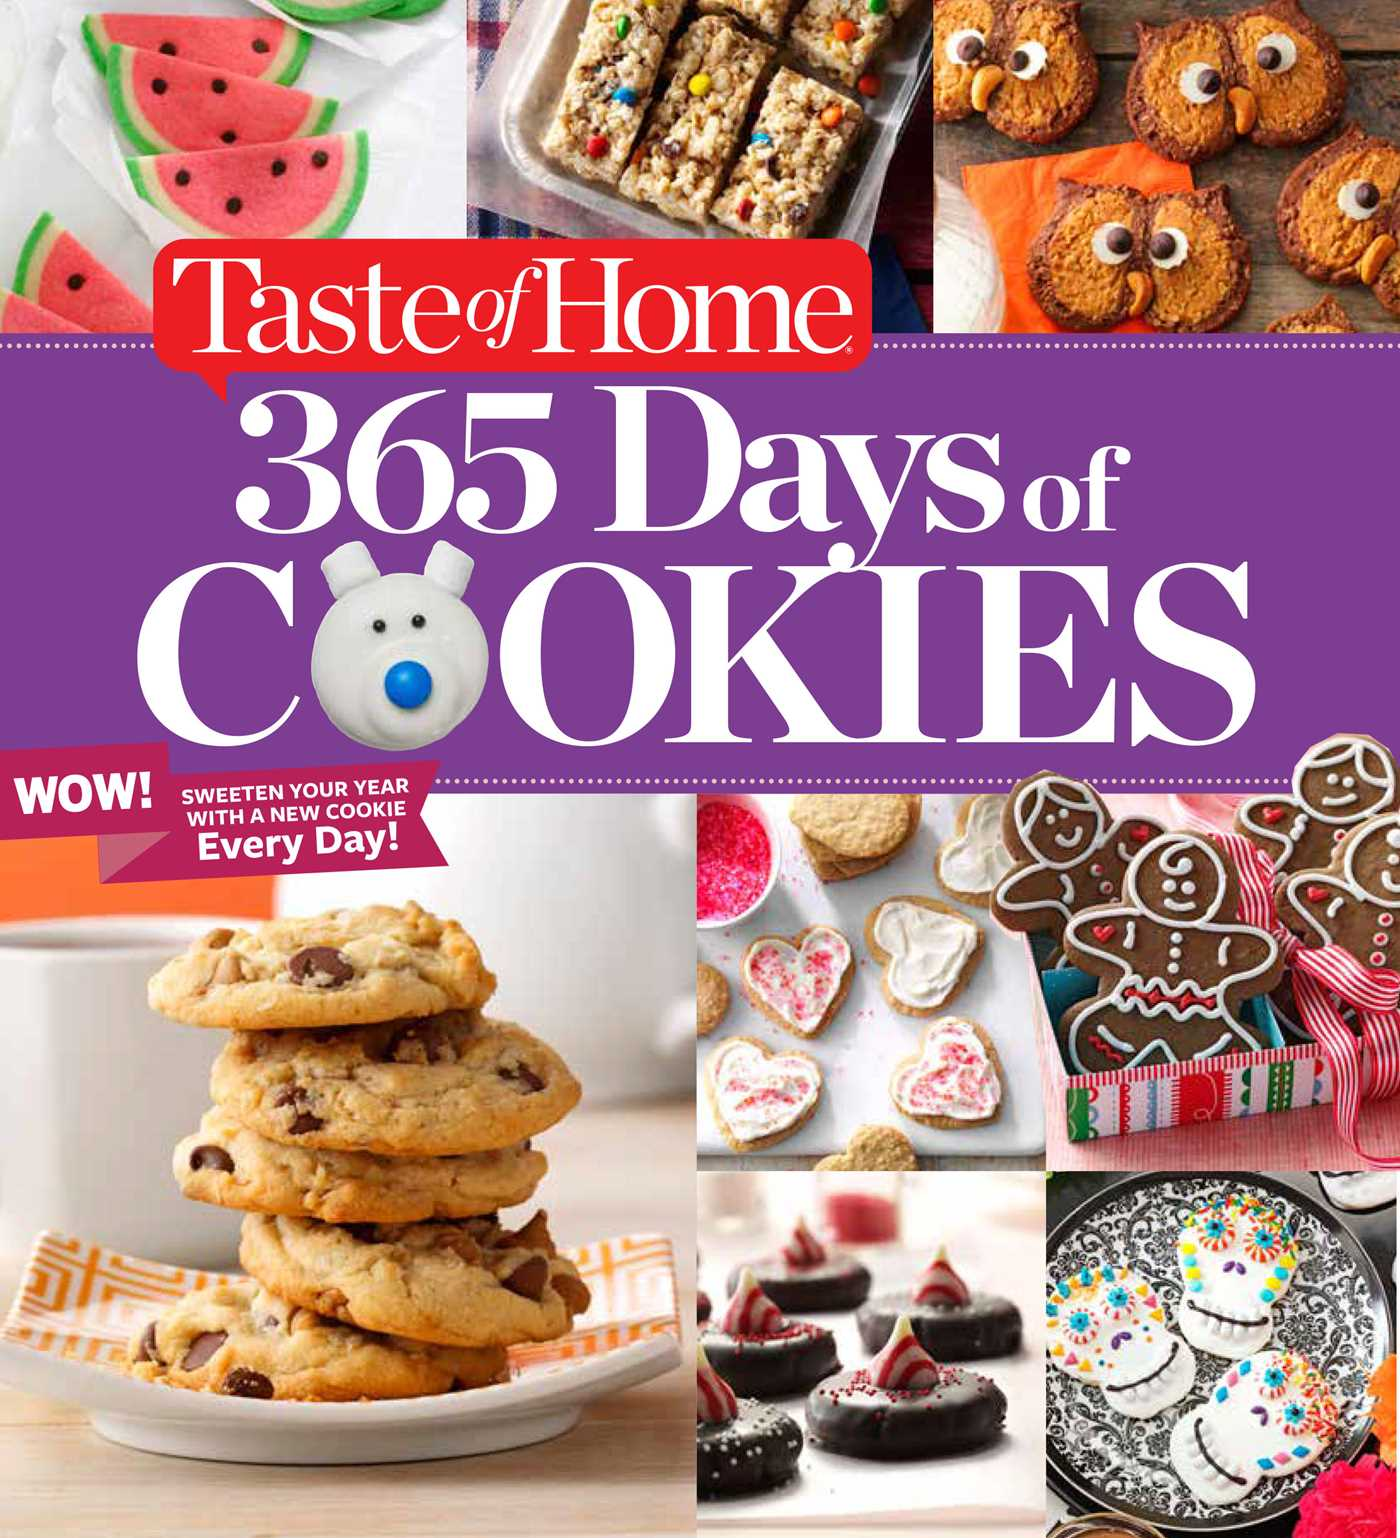 Taste of Home 365 Days of Cookies : Sweeten Your Year with a New Cookie Every Day